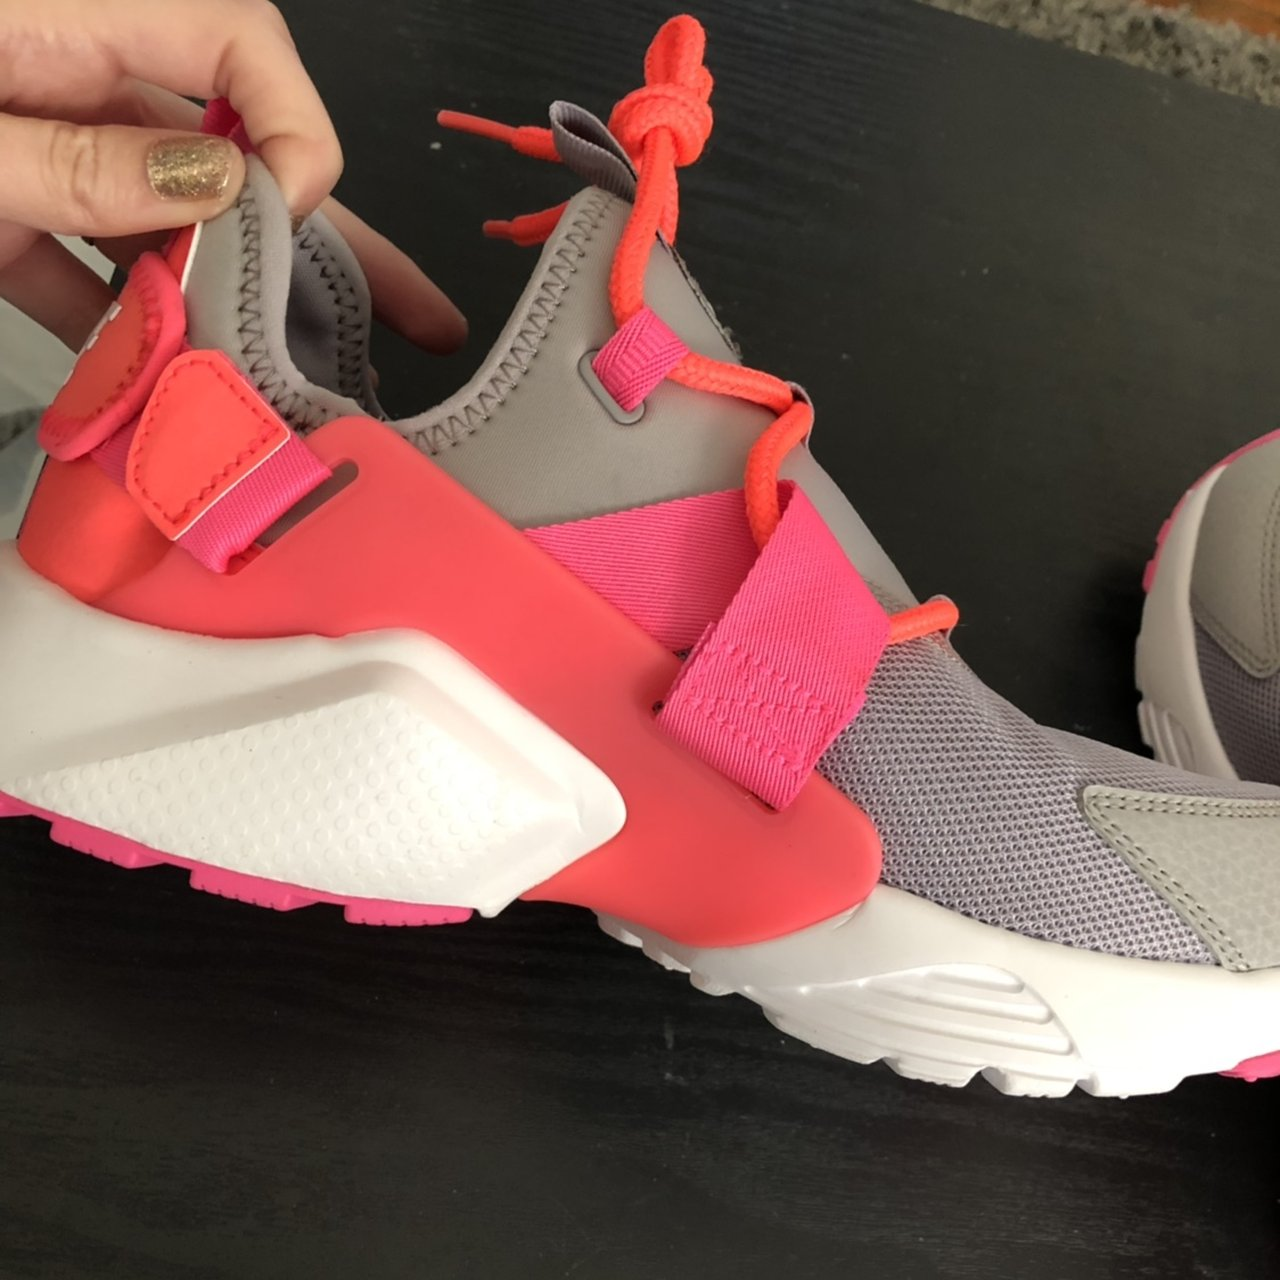 8a6b1df84b69 New pink and gray Nike